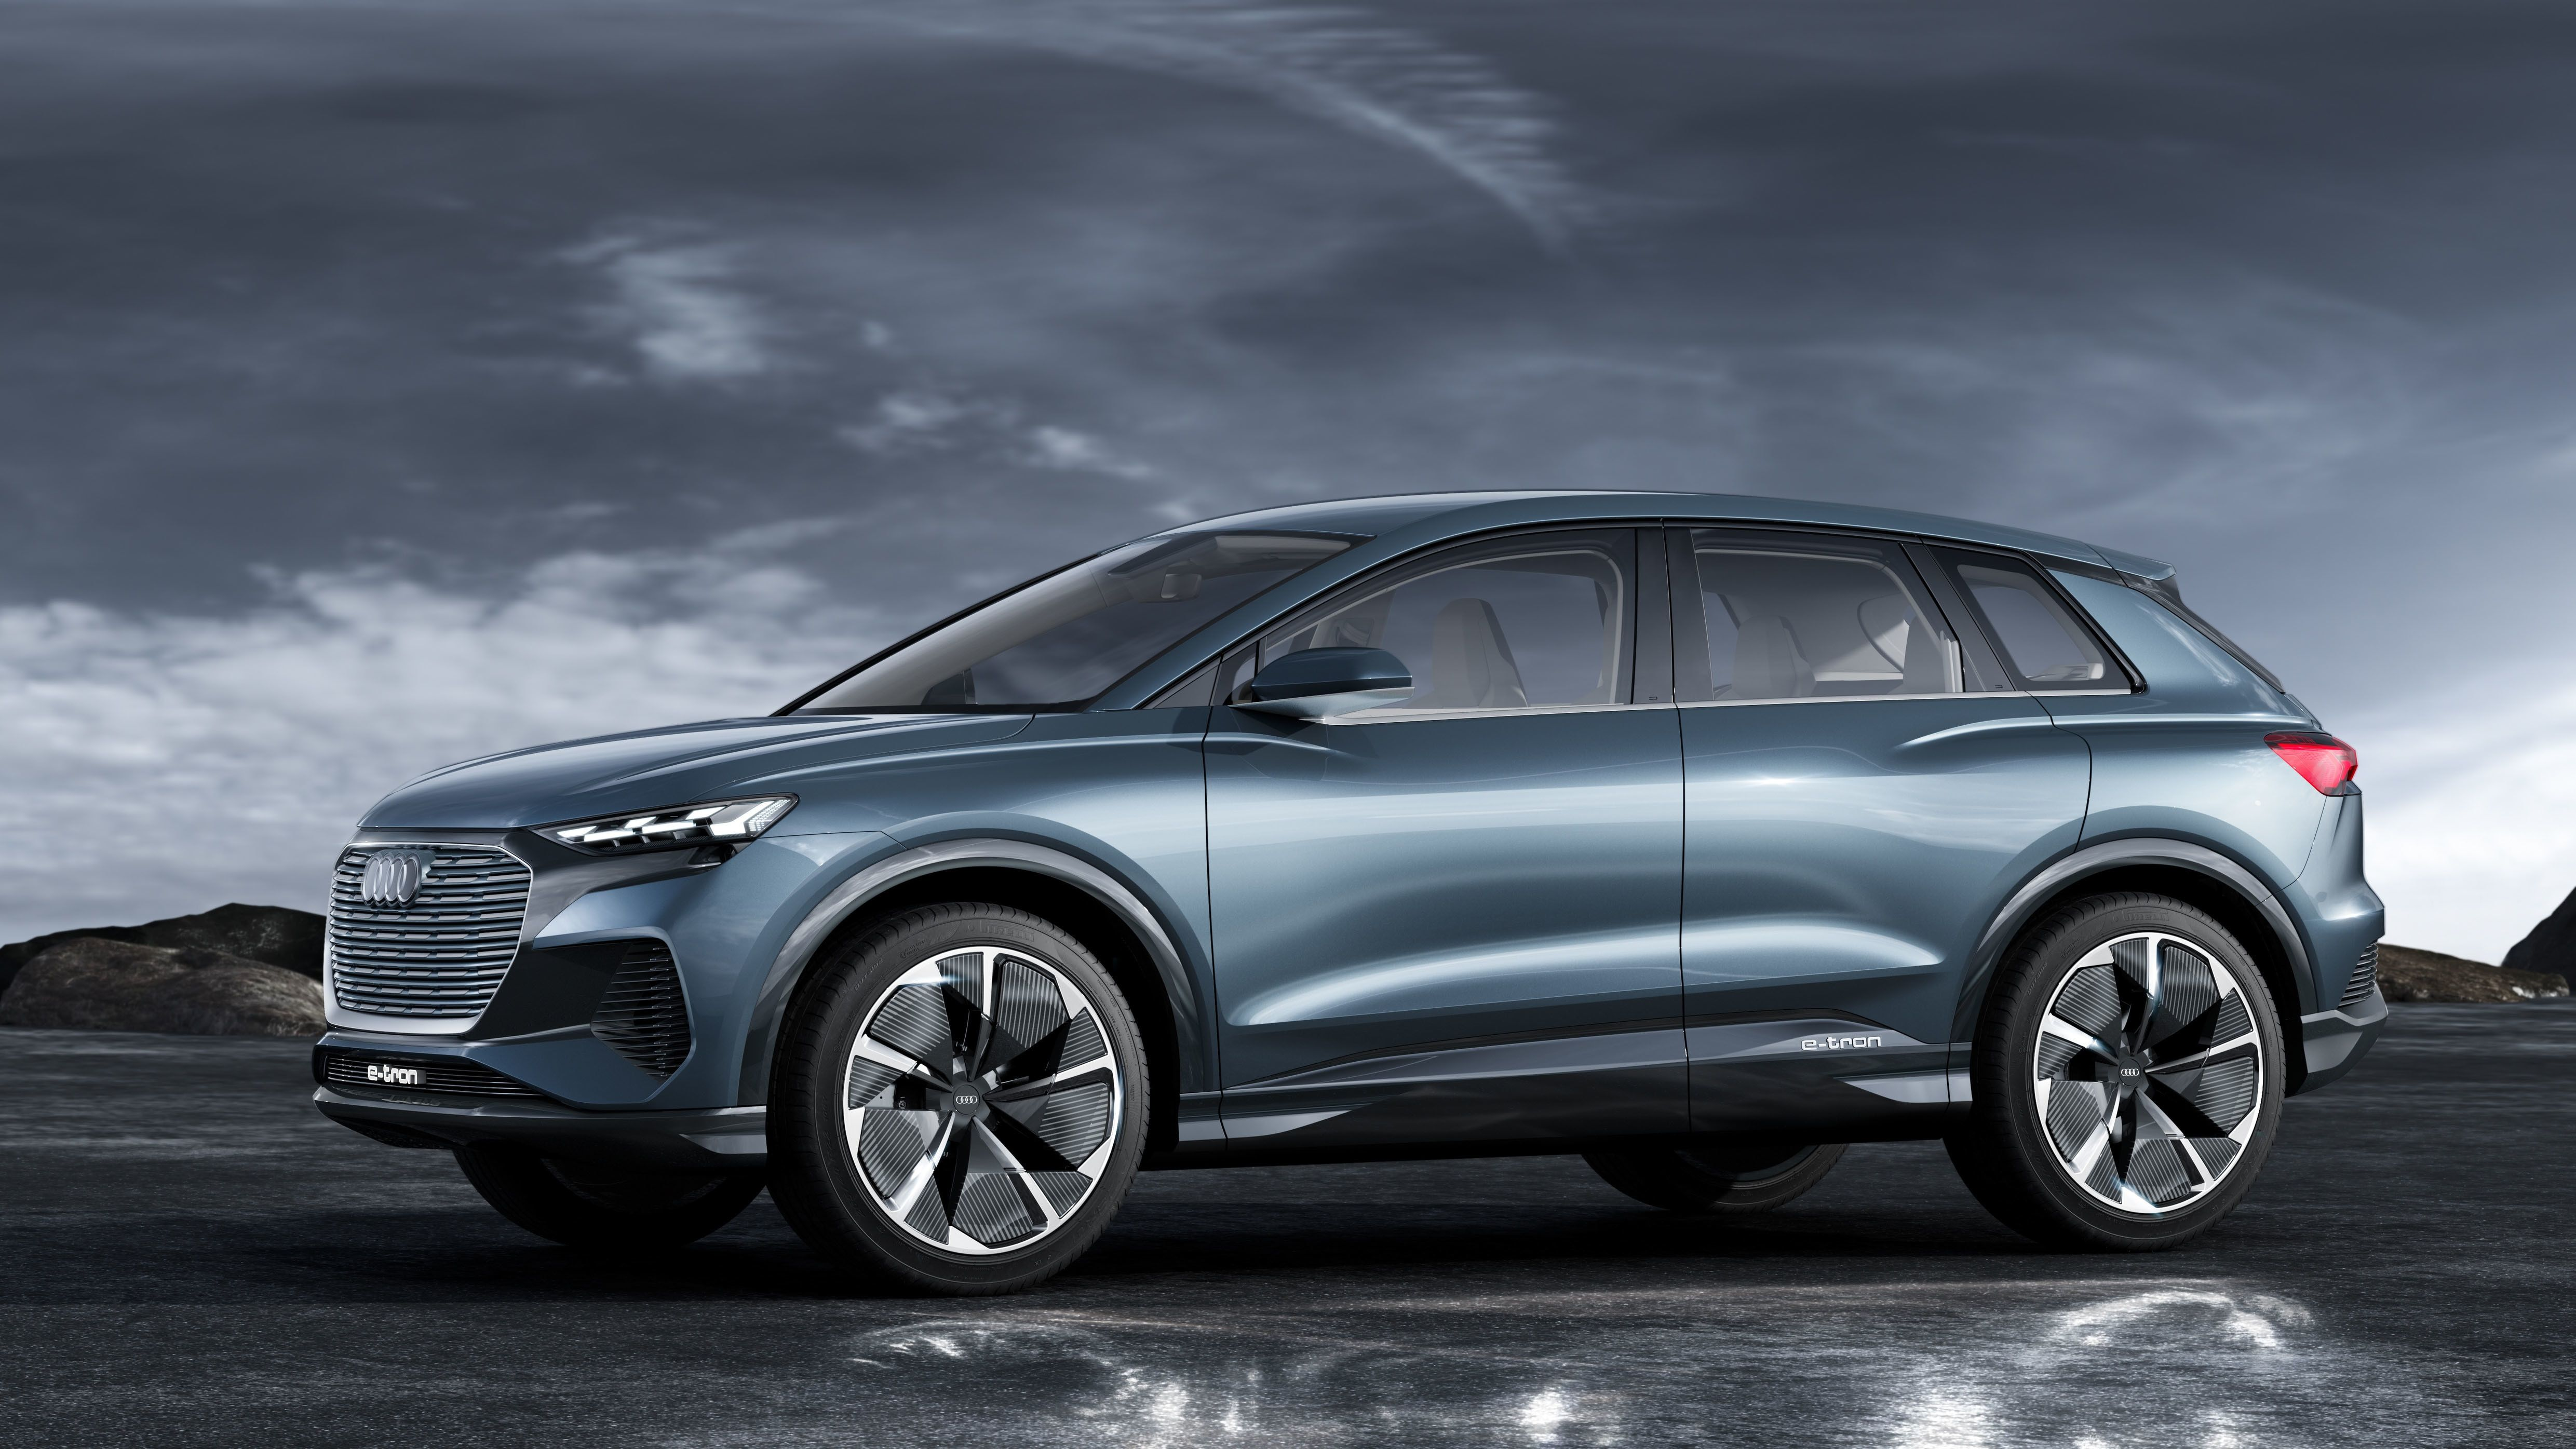 Audi S Baby Q4 E Tron Electric Suv Is Here And Looks Amazing The Conceptual Phase